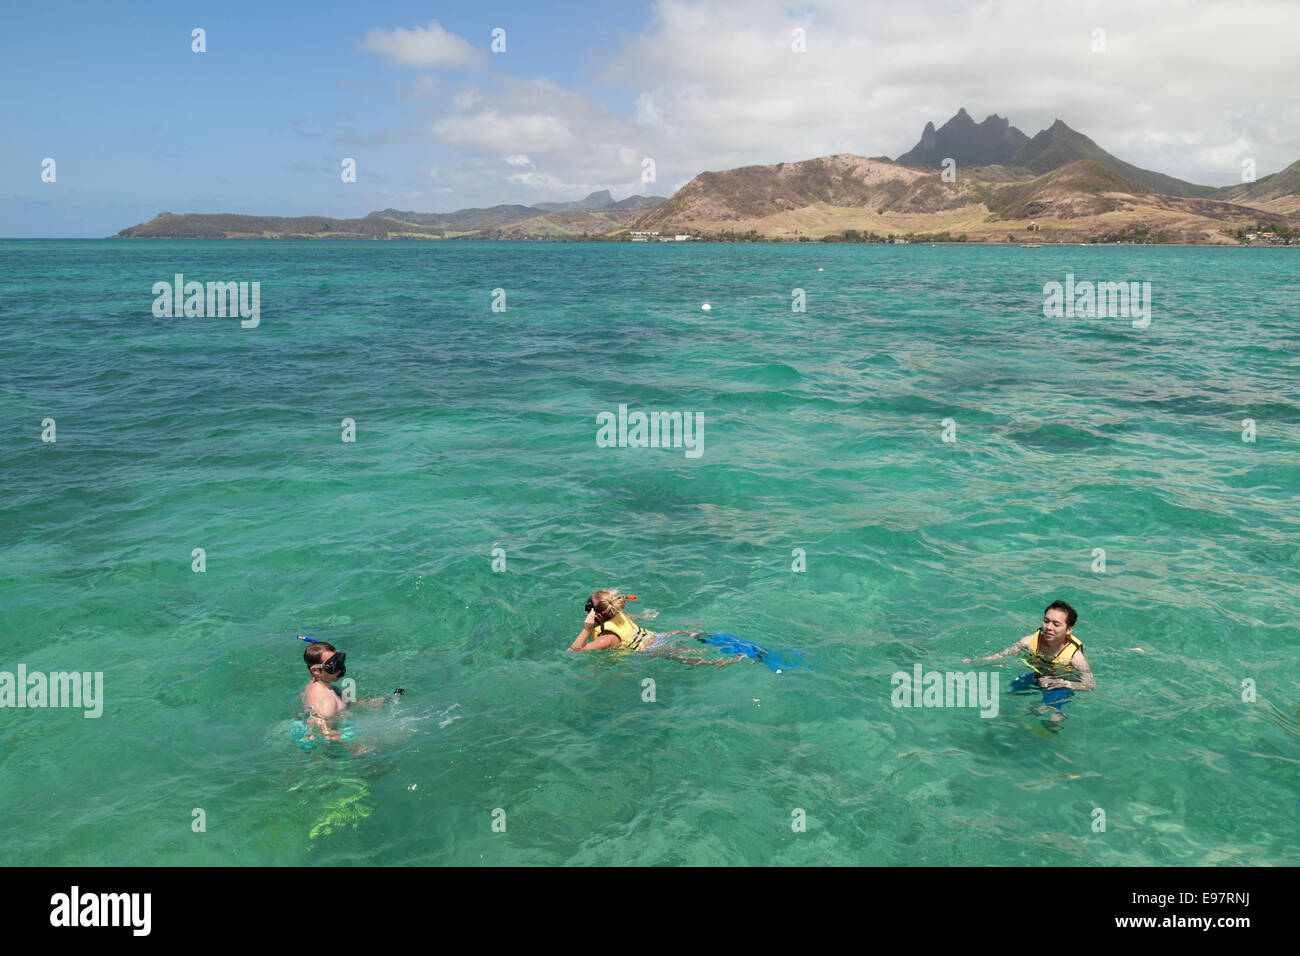 People snorkeling in the Indian Ocean, Mauritius - Stock Image